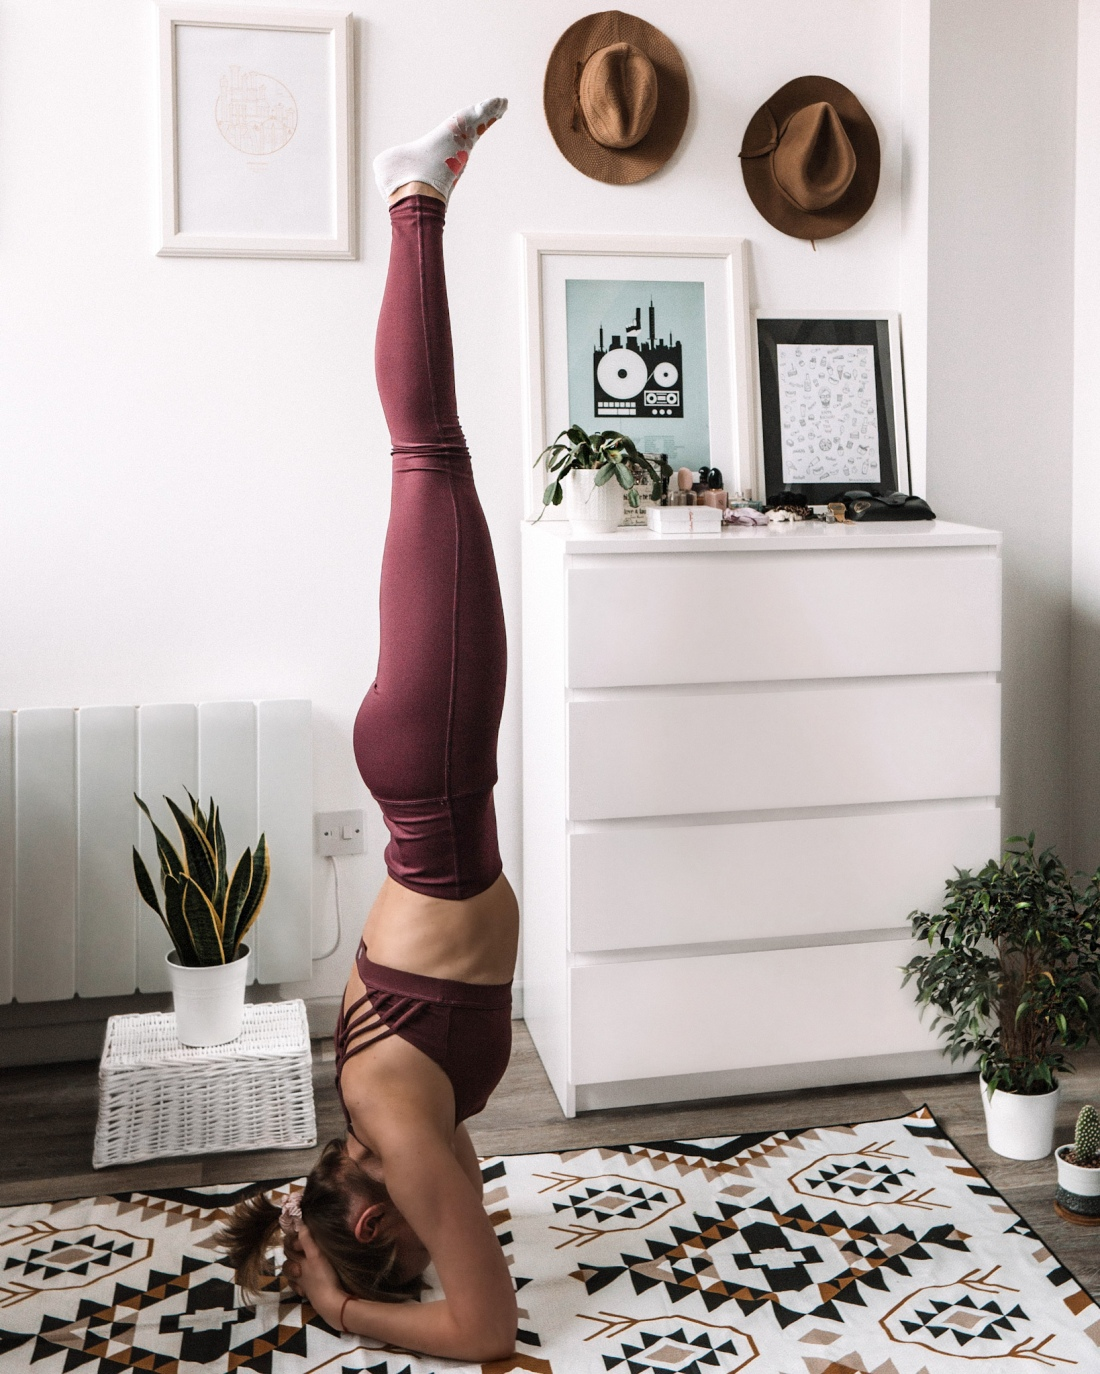 Yoga practice at home - things to do in lockdown